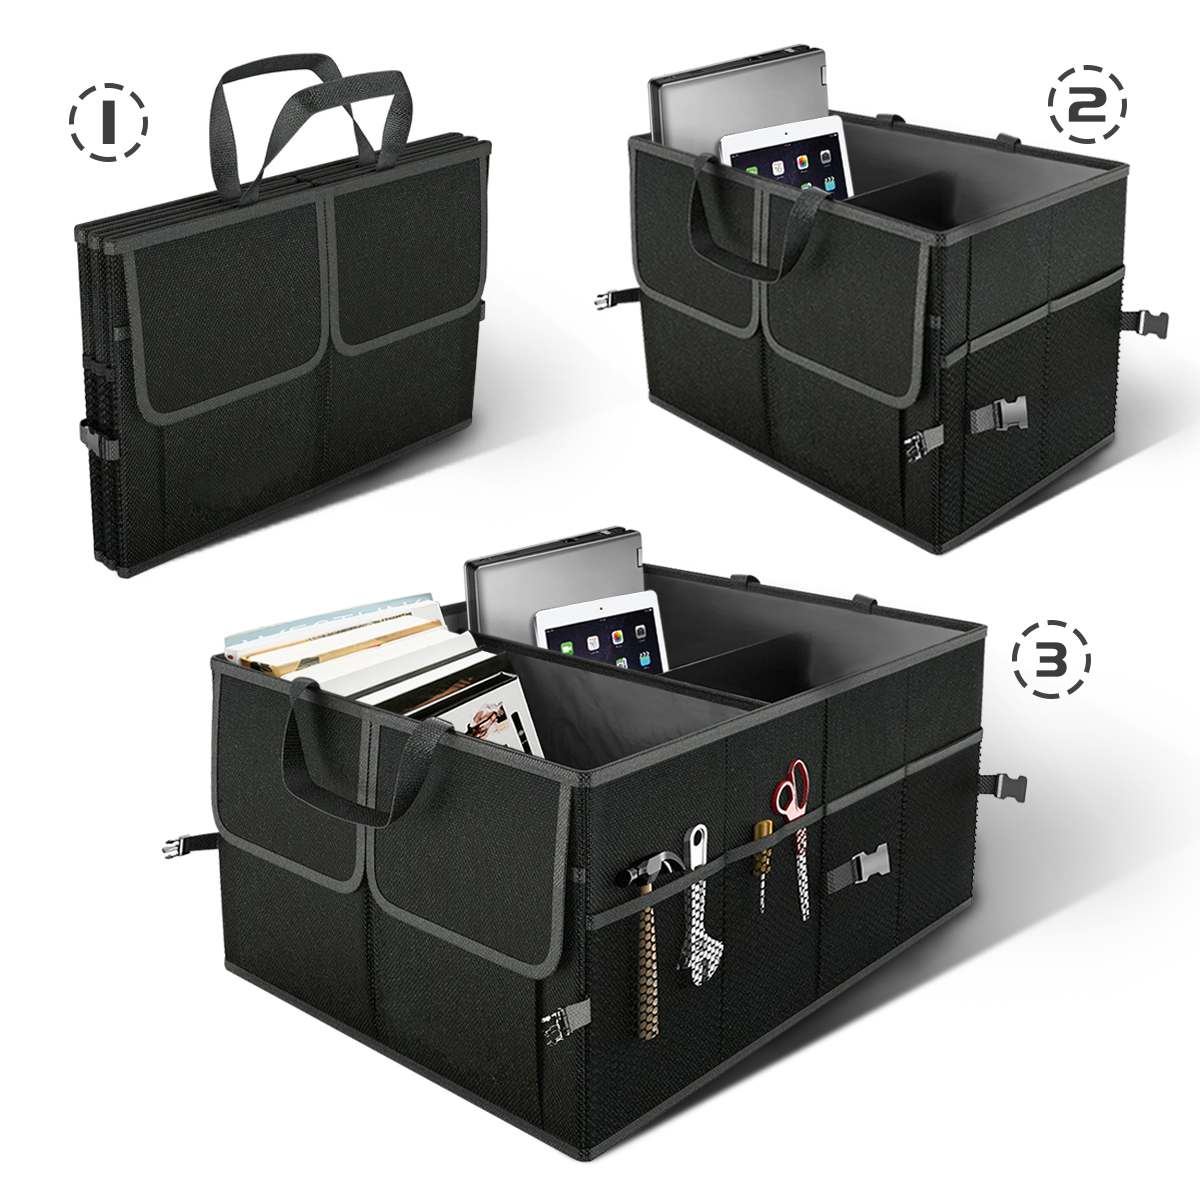 Foldable Car Trunk Storage Bag font b Box b font Black Tool Food Toys Goods Organizer